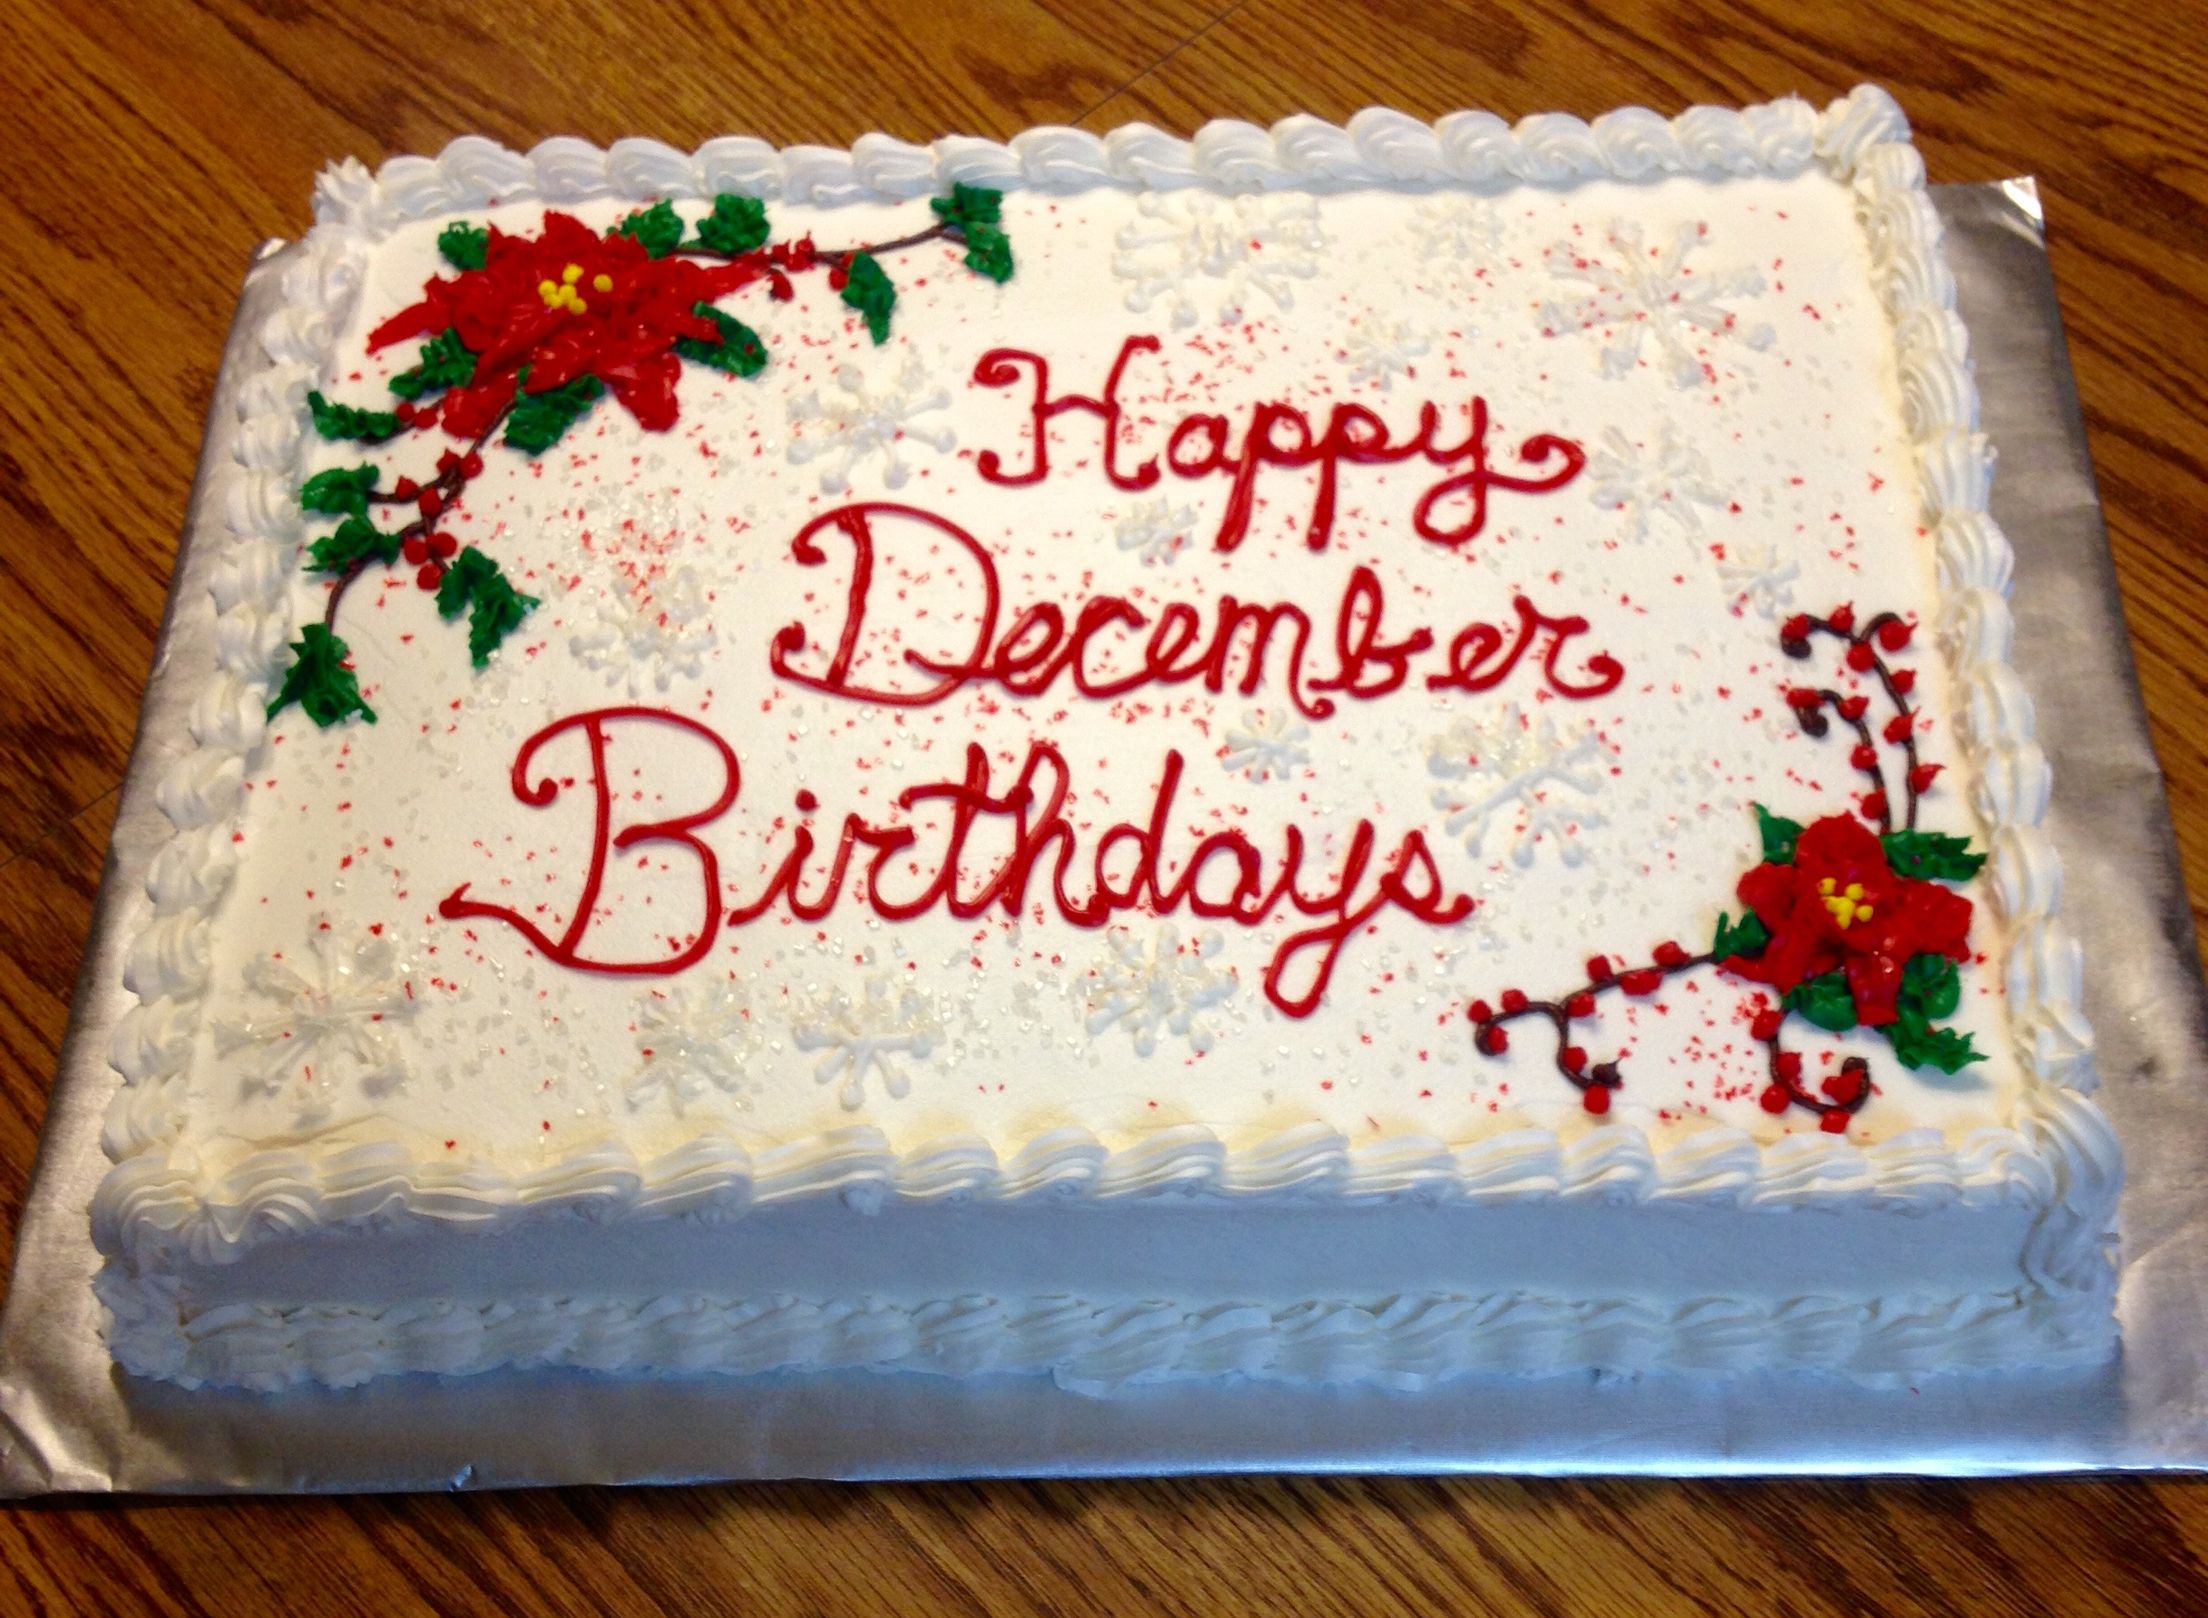 December Birthday Cakes With Images December Birthday 4th Of